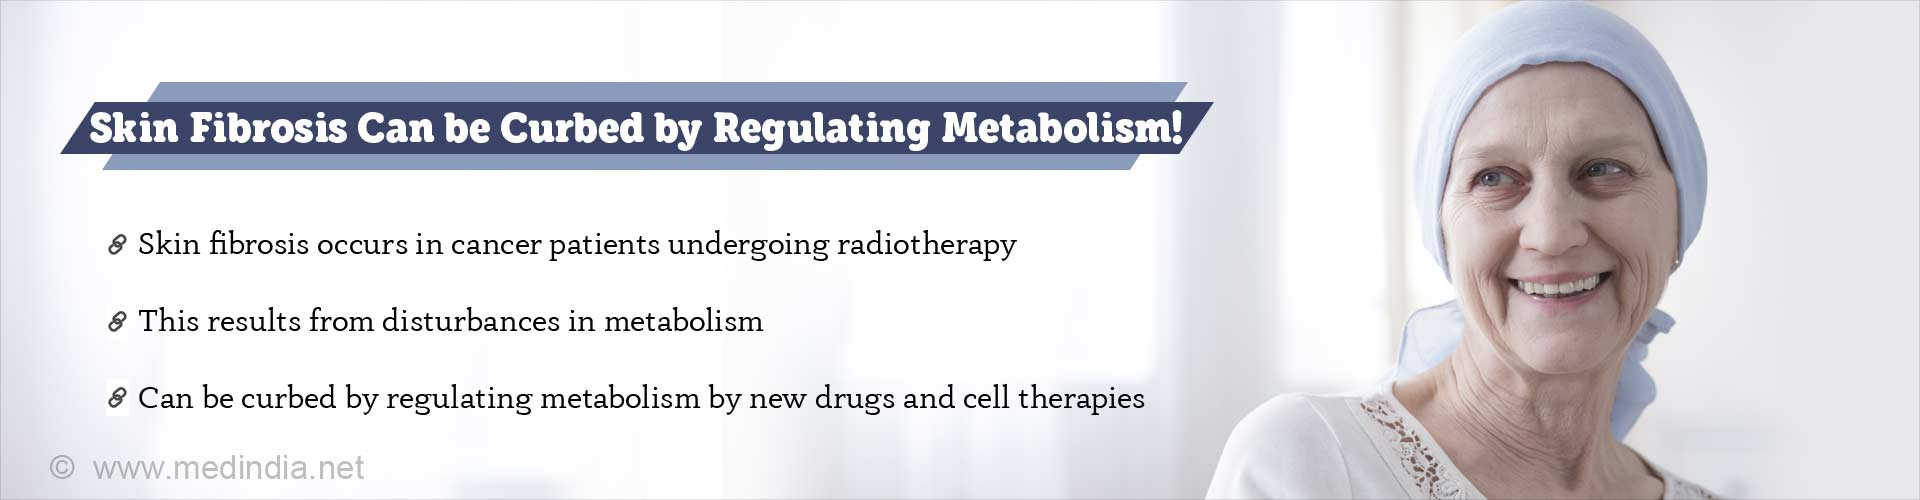 Skin fibrosis can be curbed by regulating metabolism. Skin fibrosis occurs in cancer patients undergoing radiotherapy. This results from disturbances in metabolism. Can be curbed by regulating metabolism by new drugs and cell therapies.